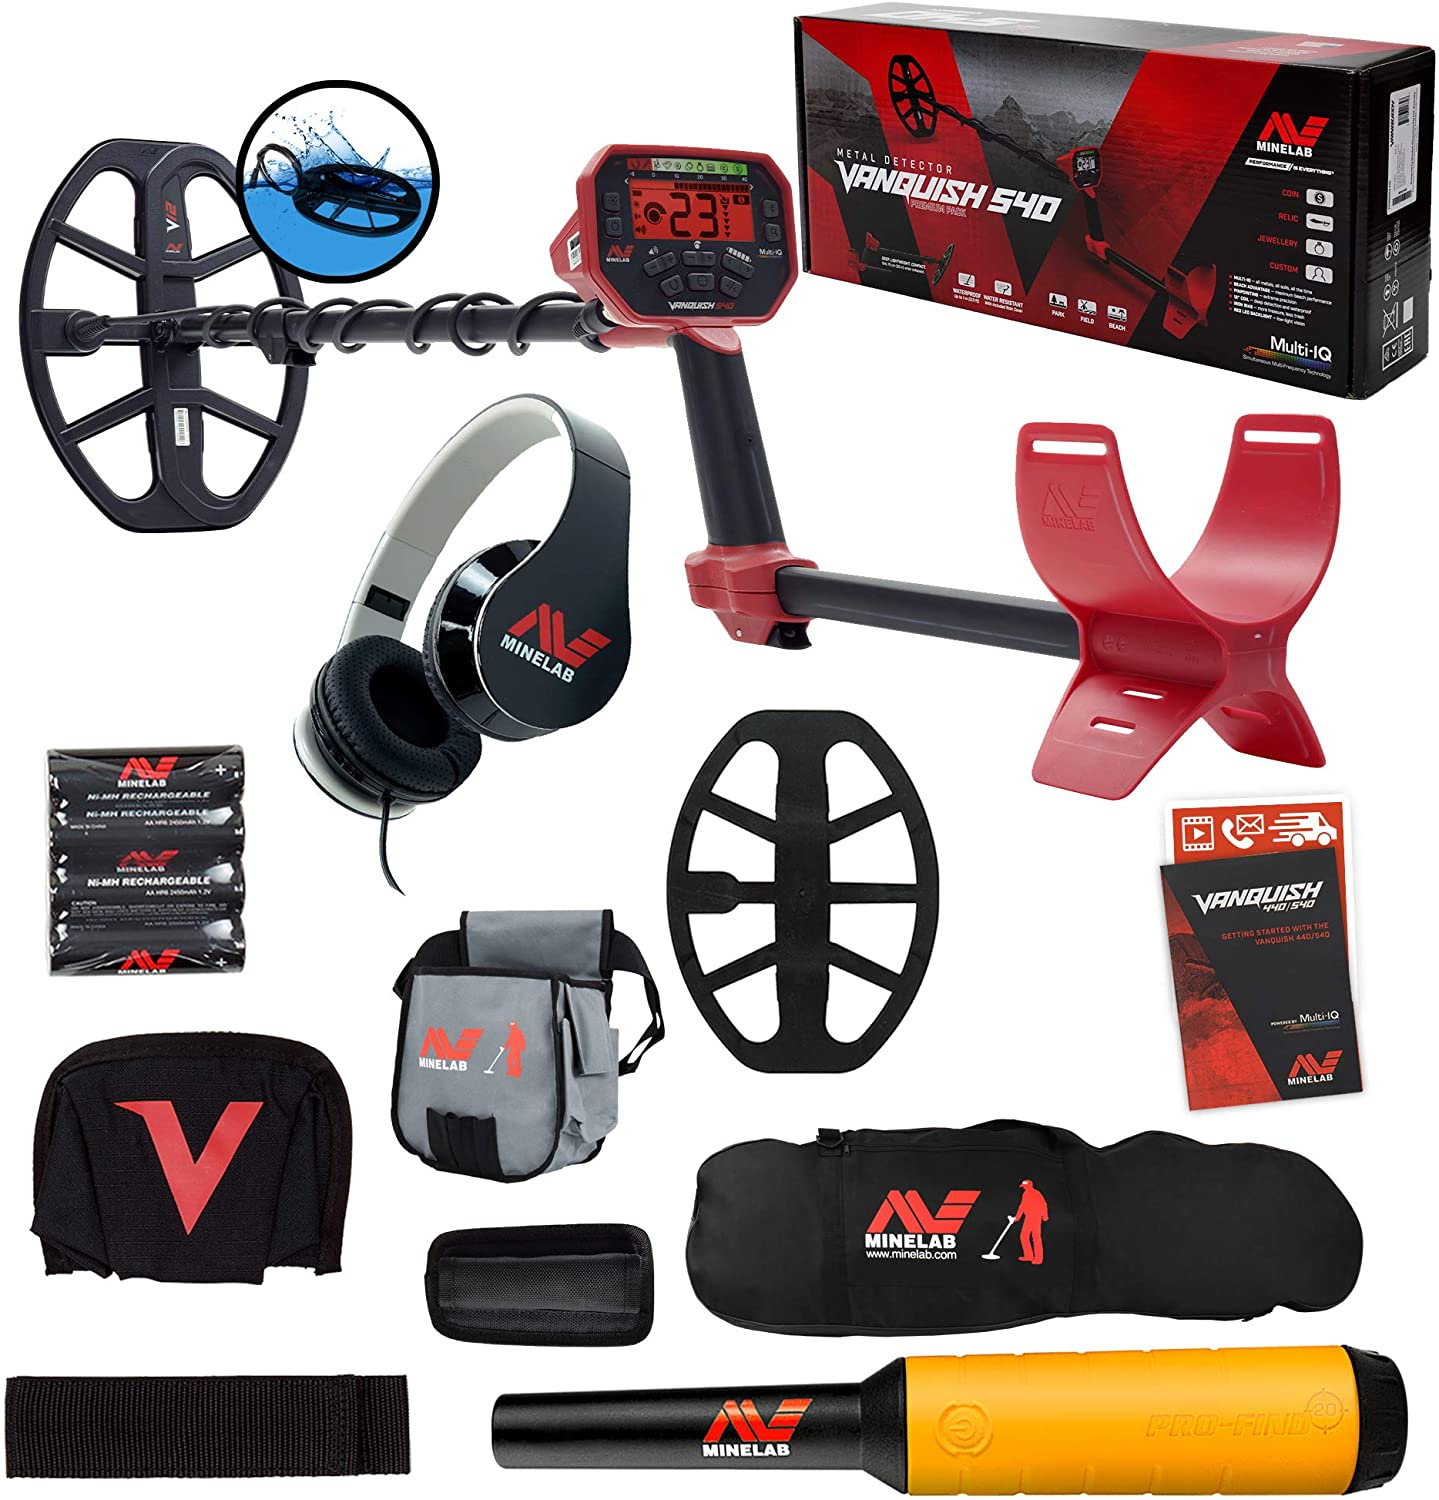 Minelab Vanquish 540 Detector w/Pro-Find 20 Pinpointer, Carry Bag, Finds Pouch